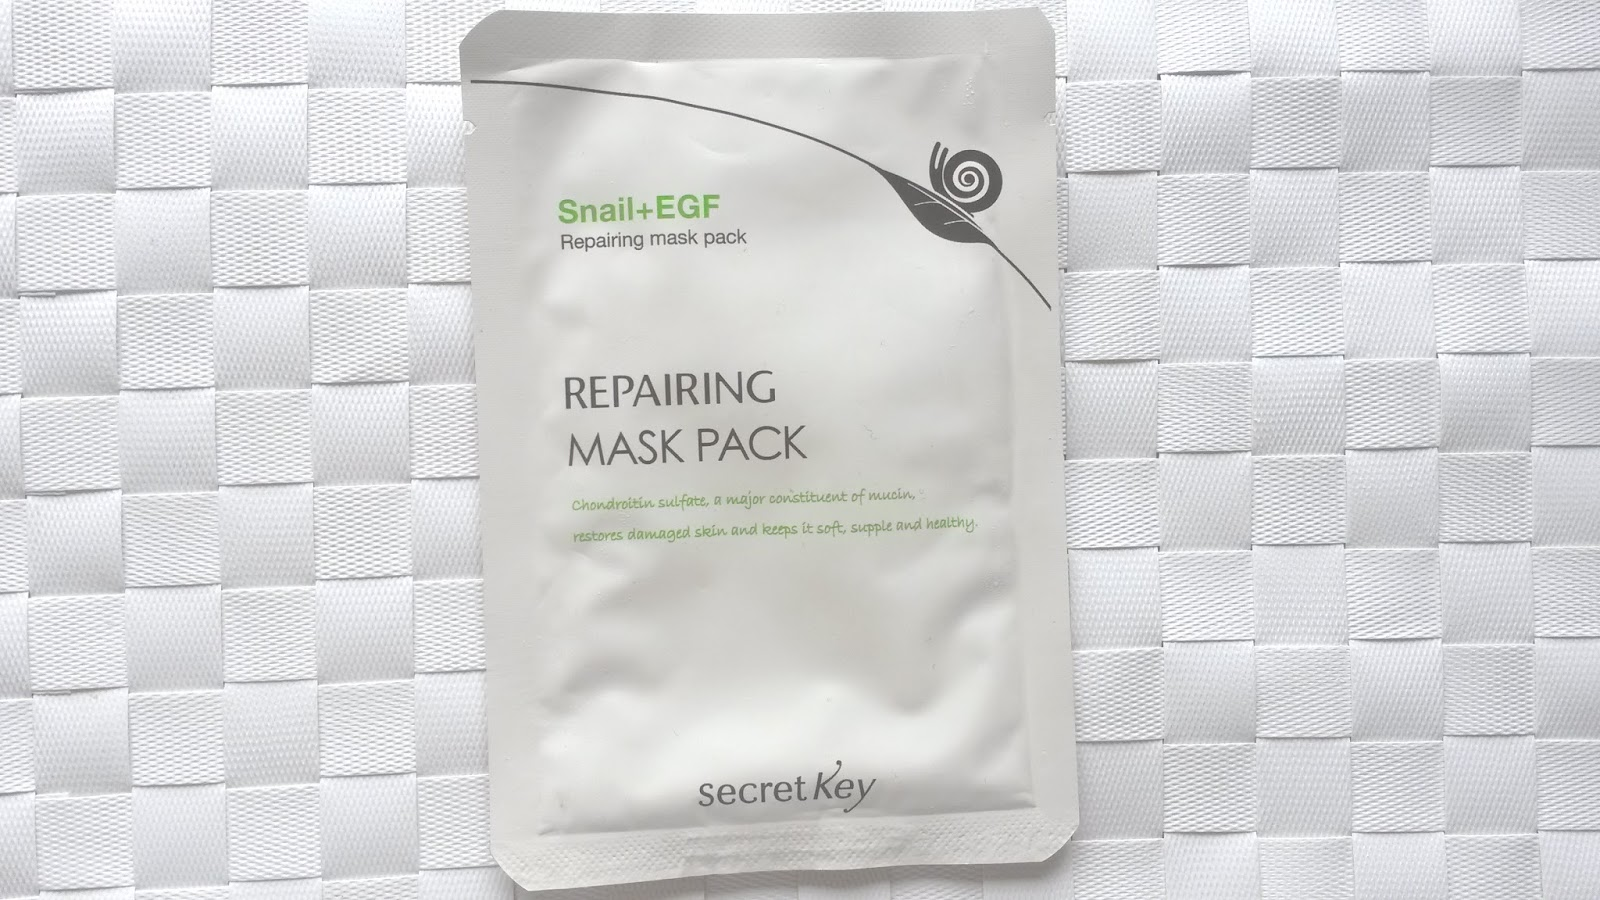 Secret Key Snail+EGF Repairing Mask Pack Review